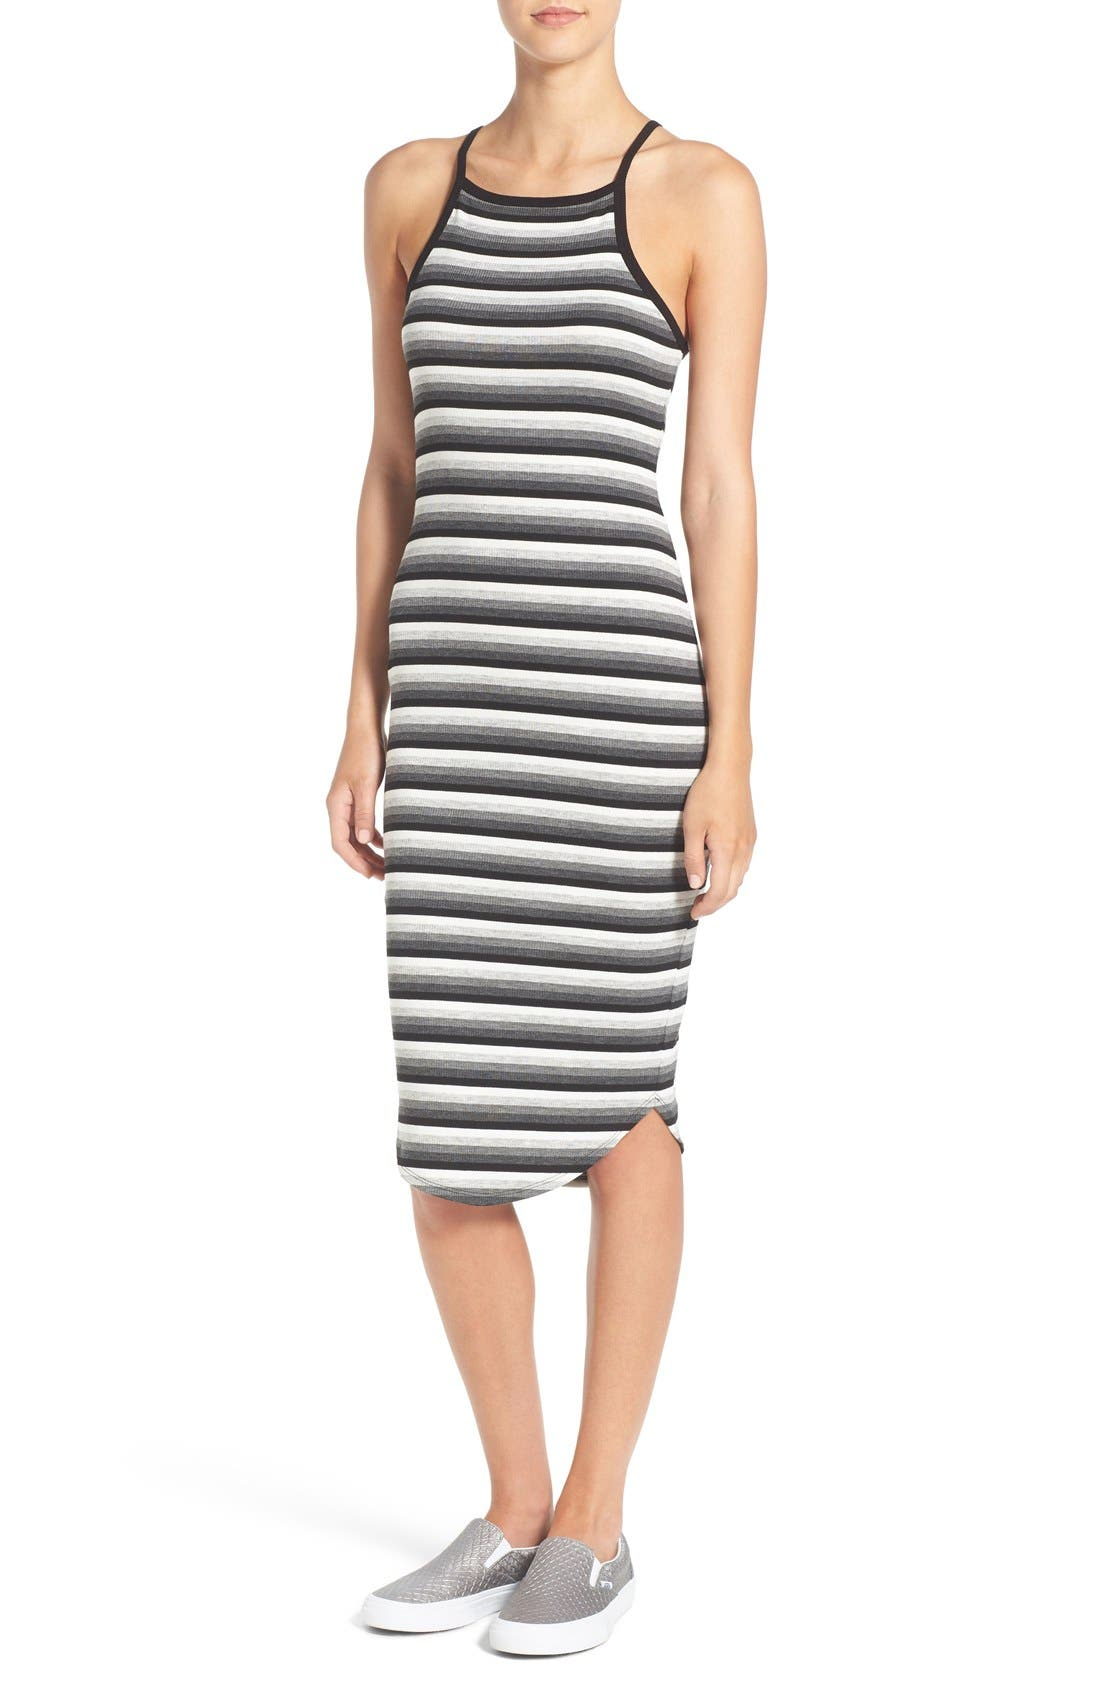 SOPRANO, Stripe Rib Knit Midi Dress, Main thumbnail 1, color, 001